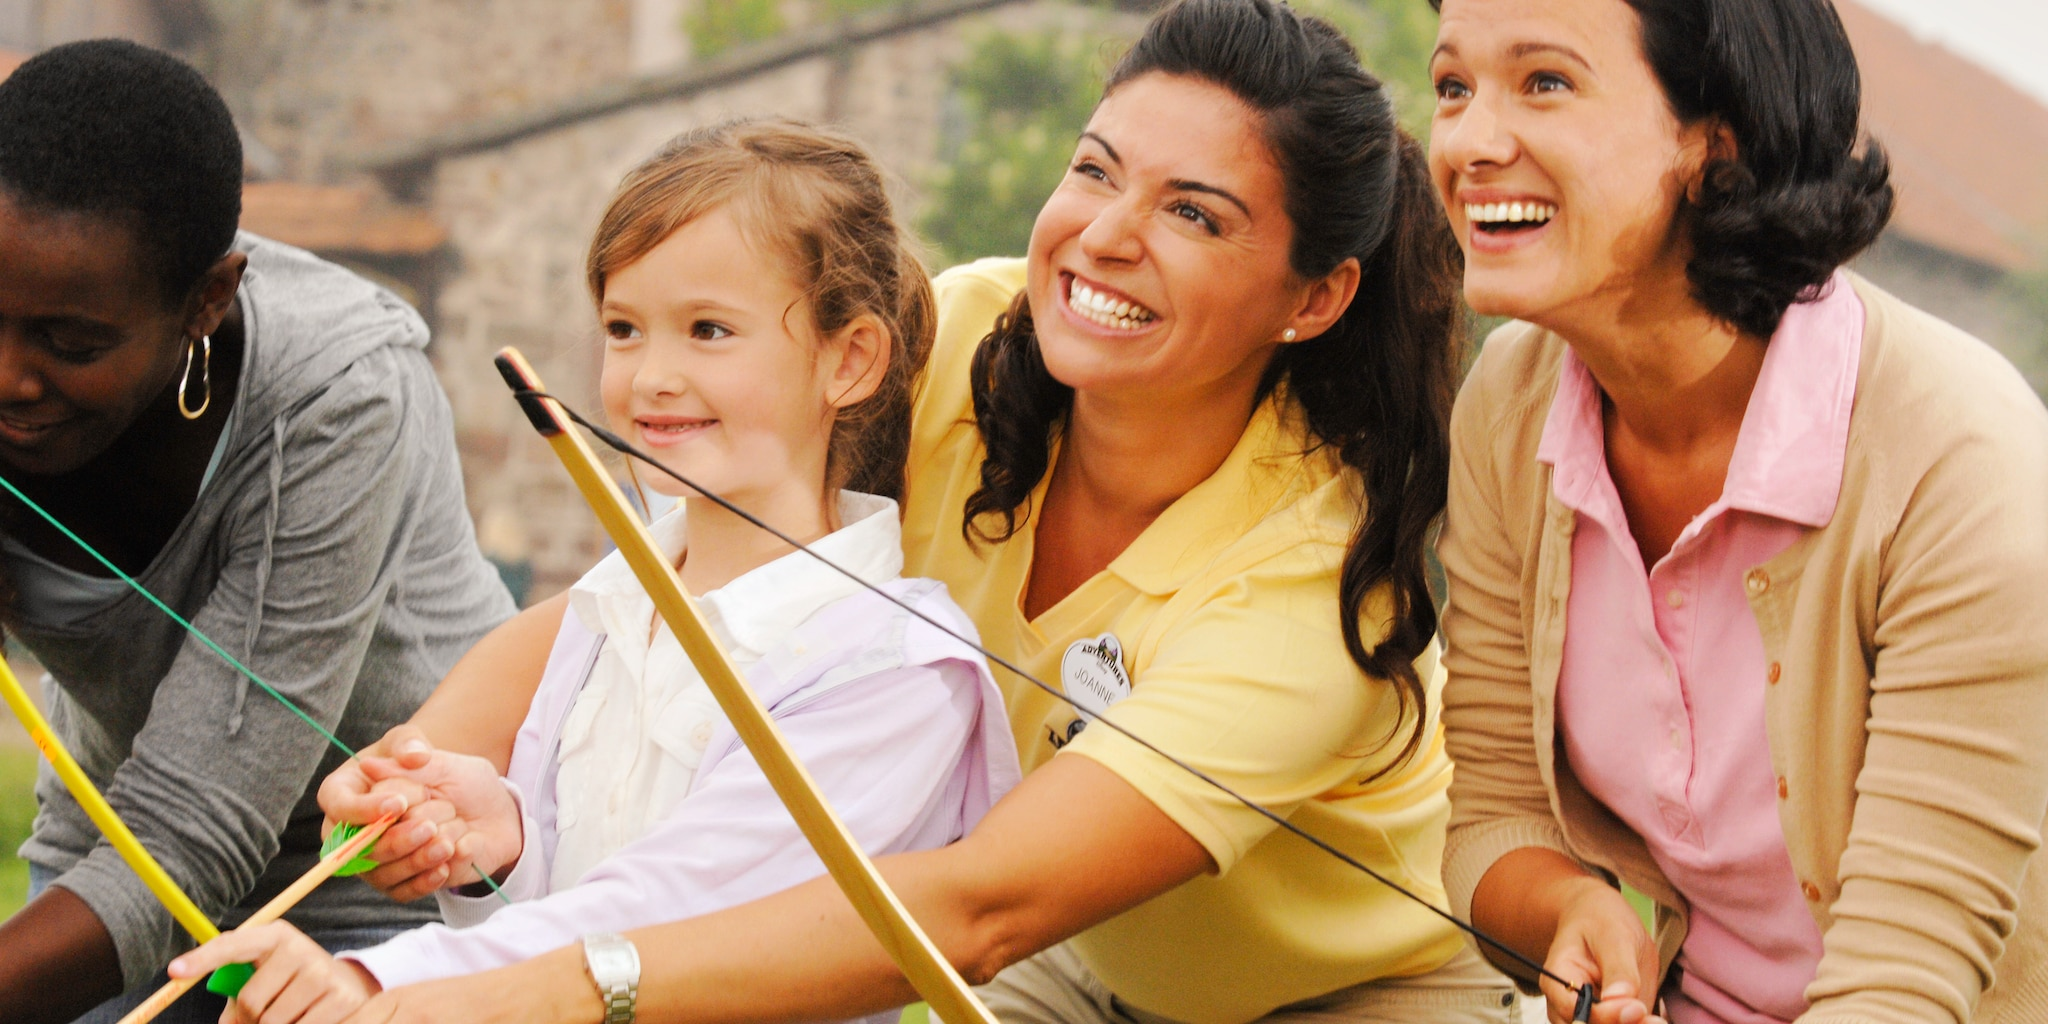 A female Adventure Guide shows a girl how to use a bow and arrow as her mother watches